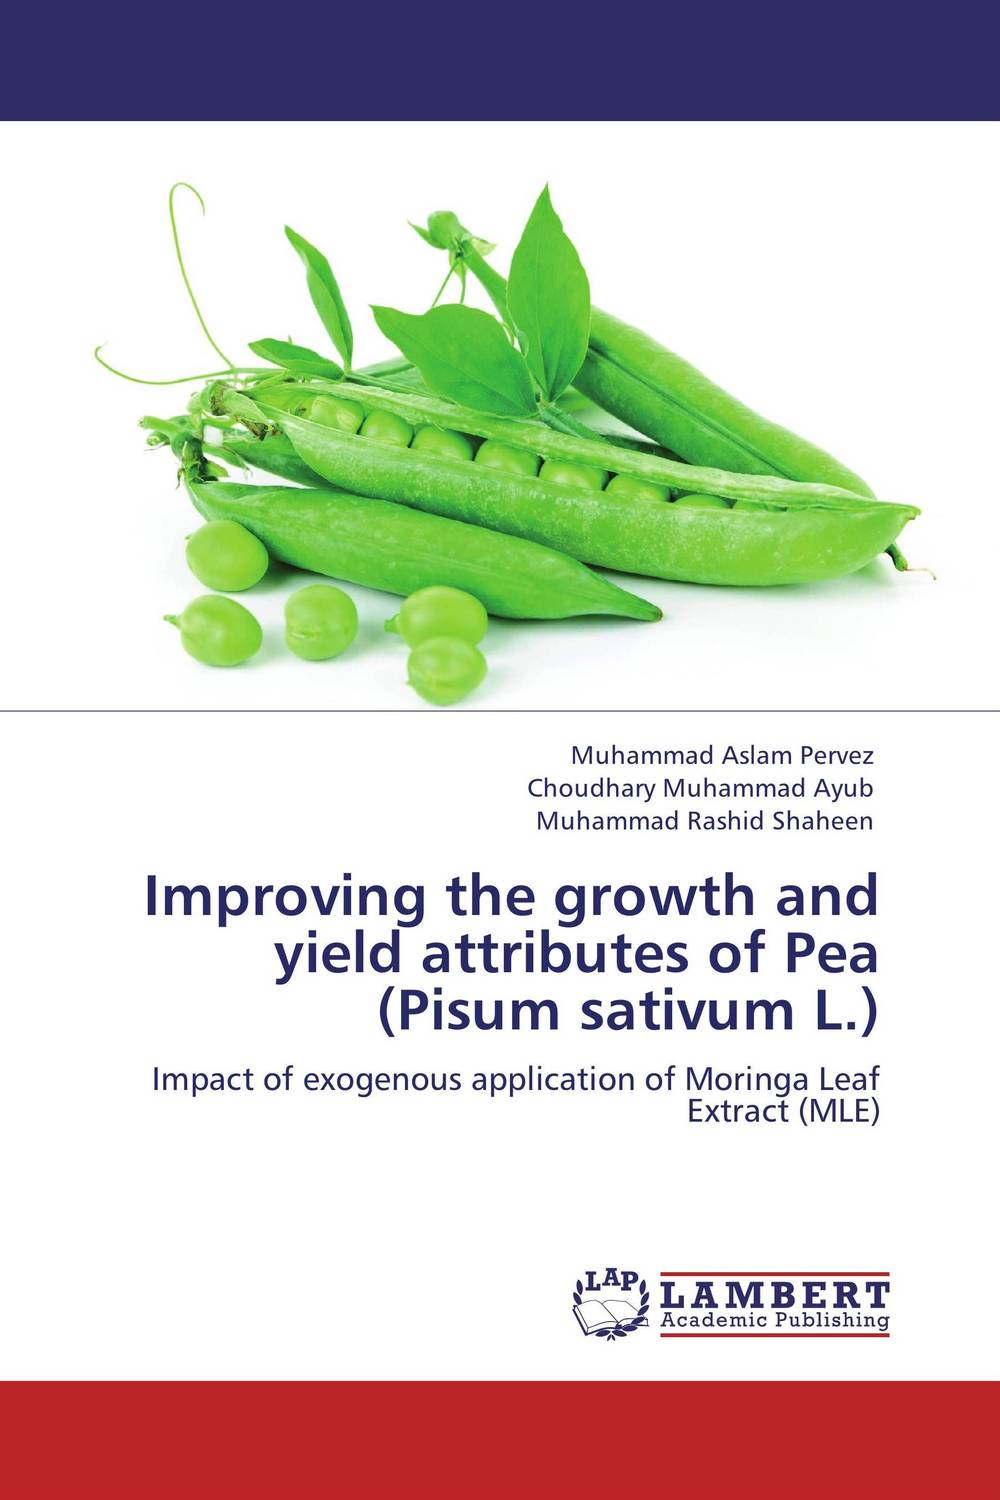 Improving the growth and yield attributes of Pea (Pisum sativum L.) genetic analysis of seed yield and other attributes in lentil